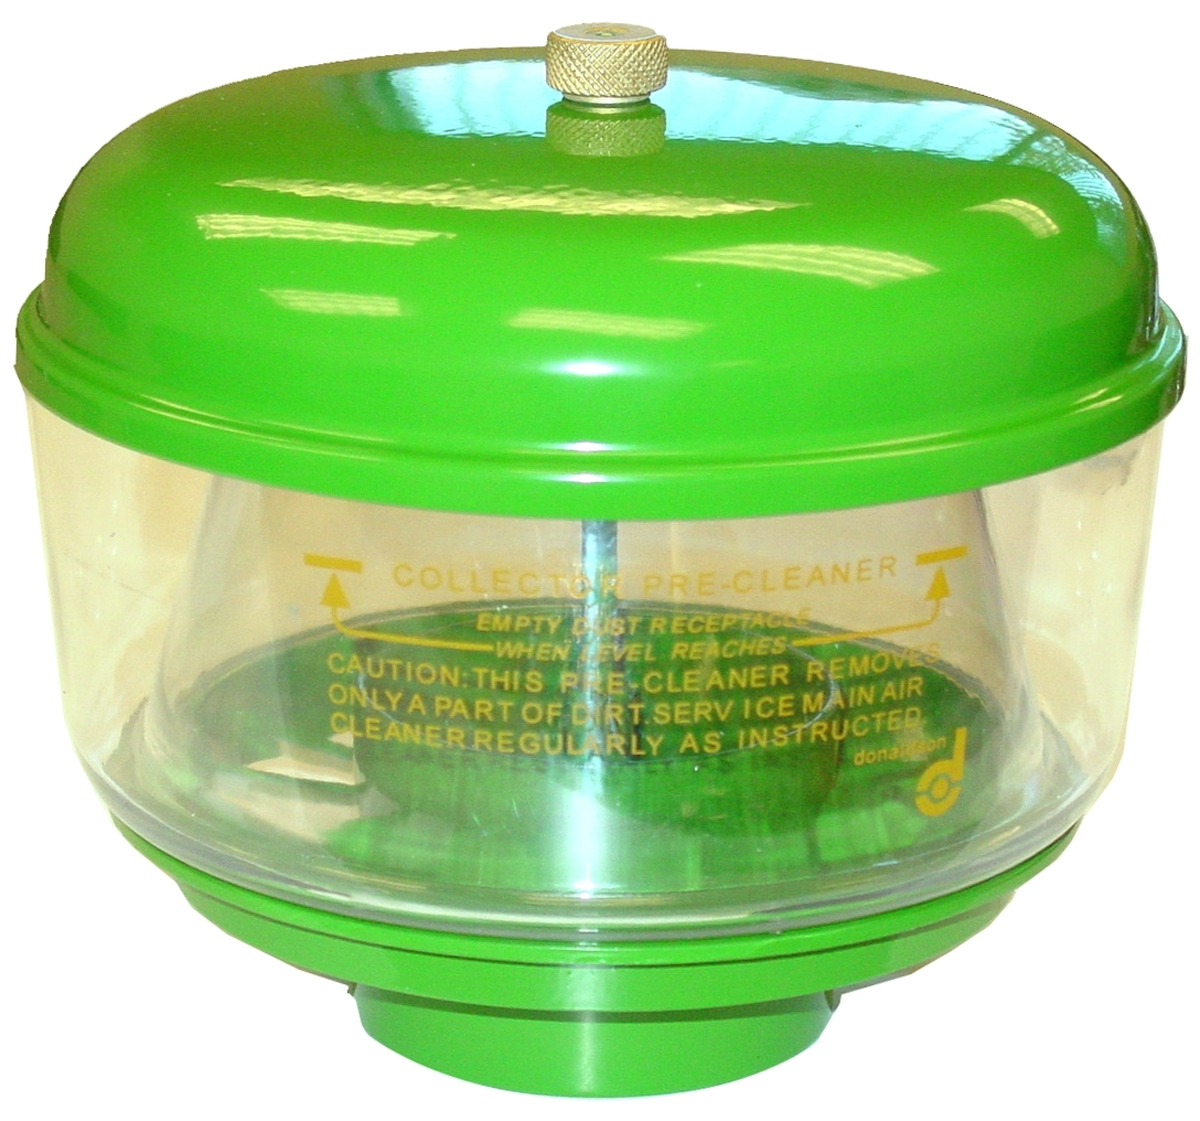 PRECLEANER KIT: LID W/NUT, PLASTIC BOWL, & METAL BASE